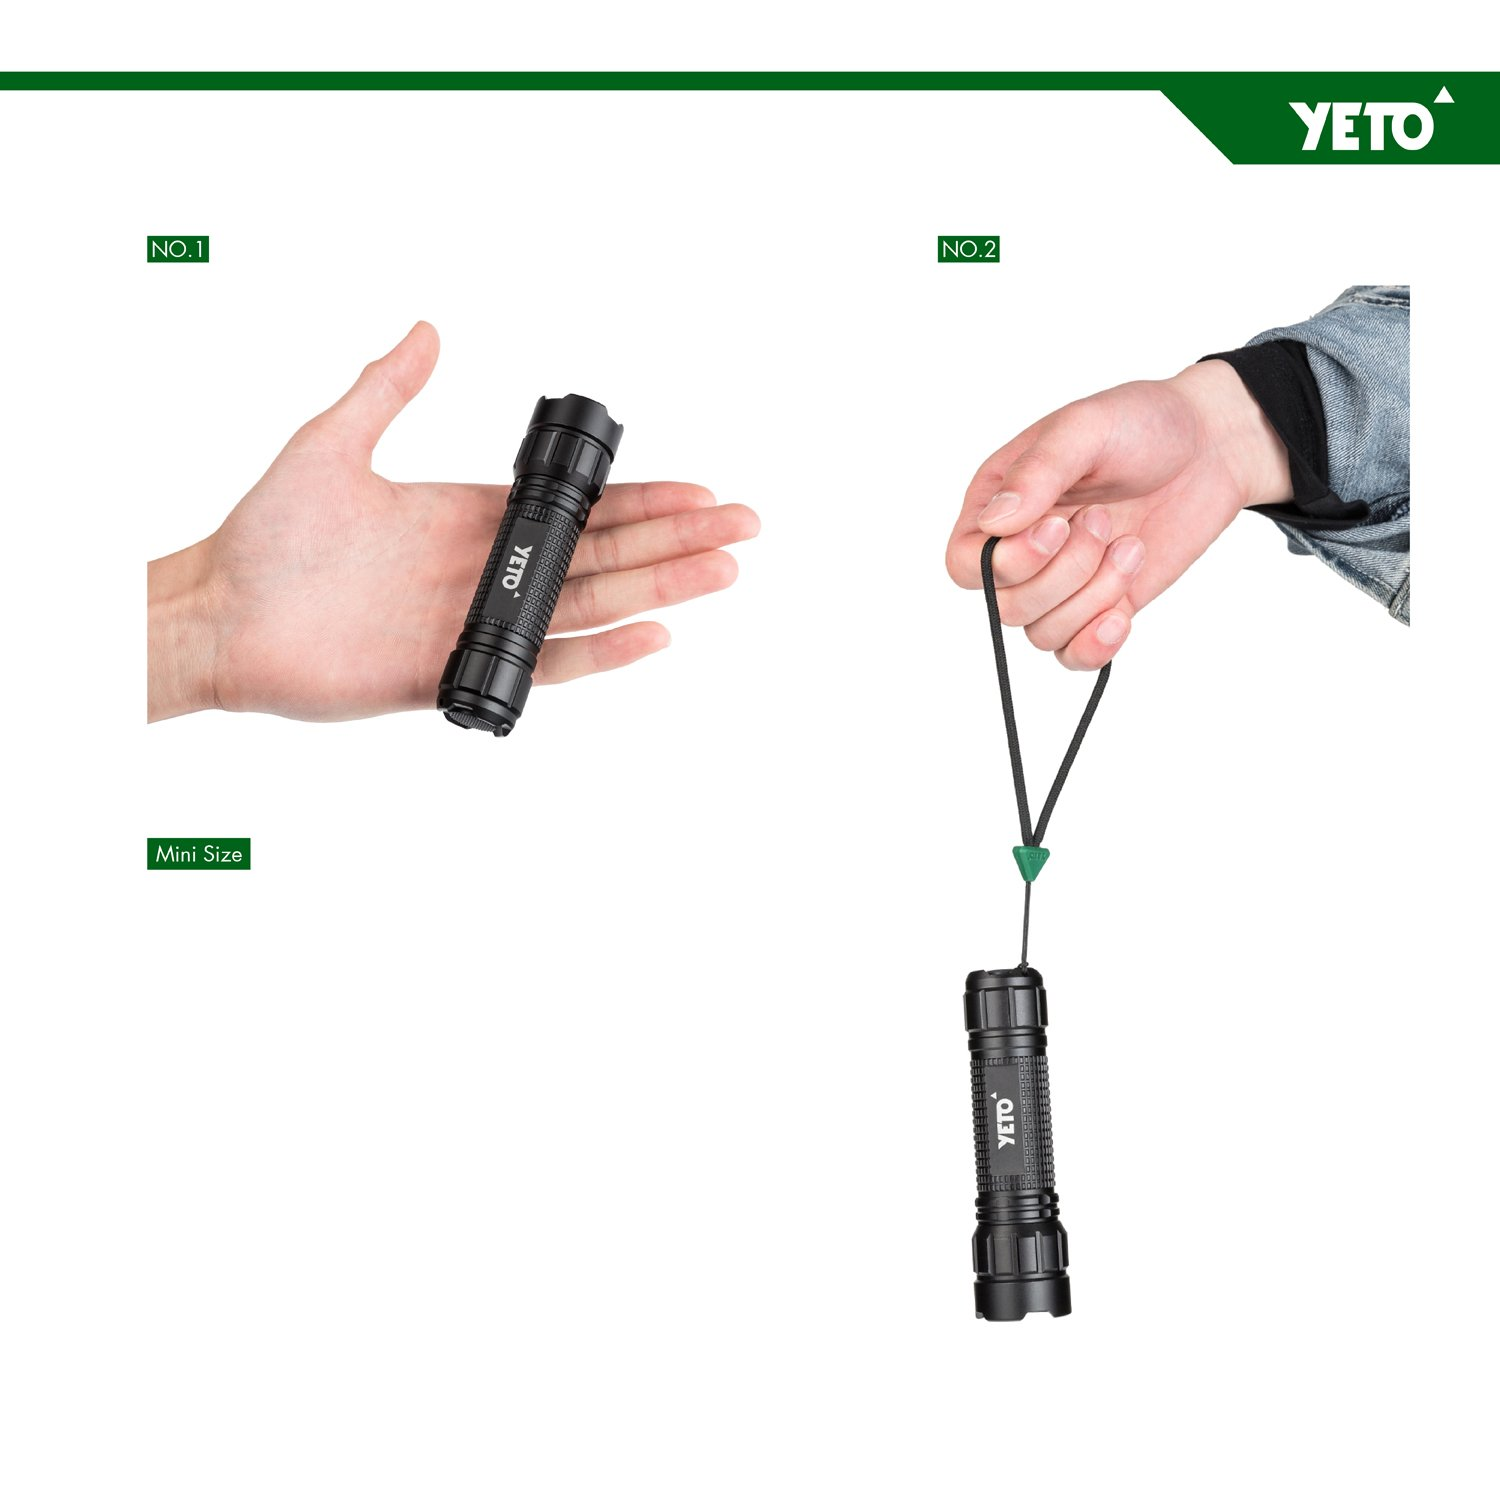 YETO Three-modes CREE XPG 5W LED Zoomable Self-defense Flashlight Torch